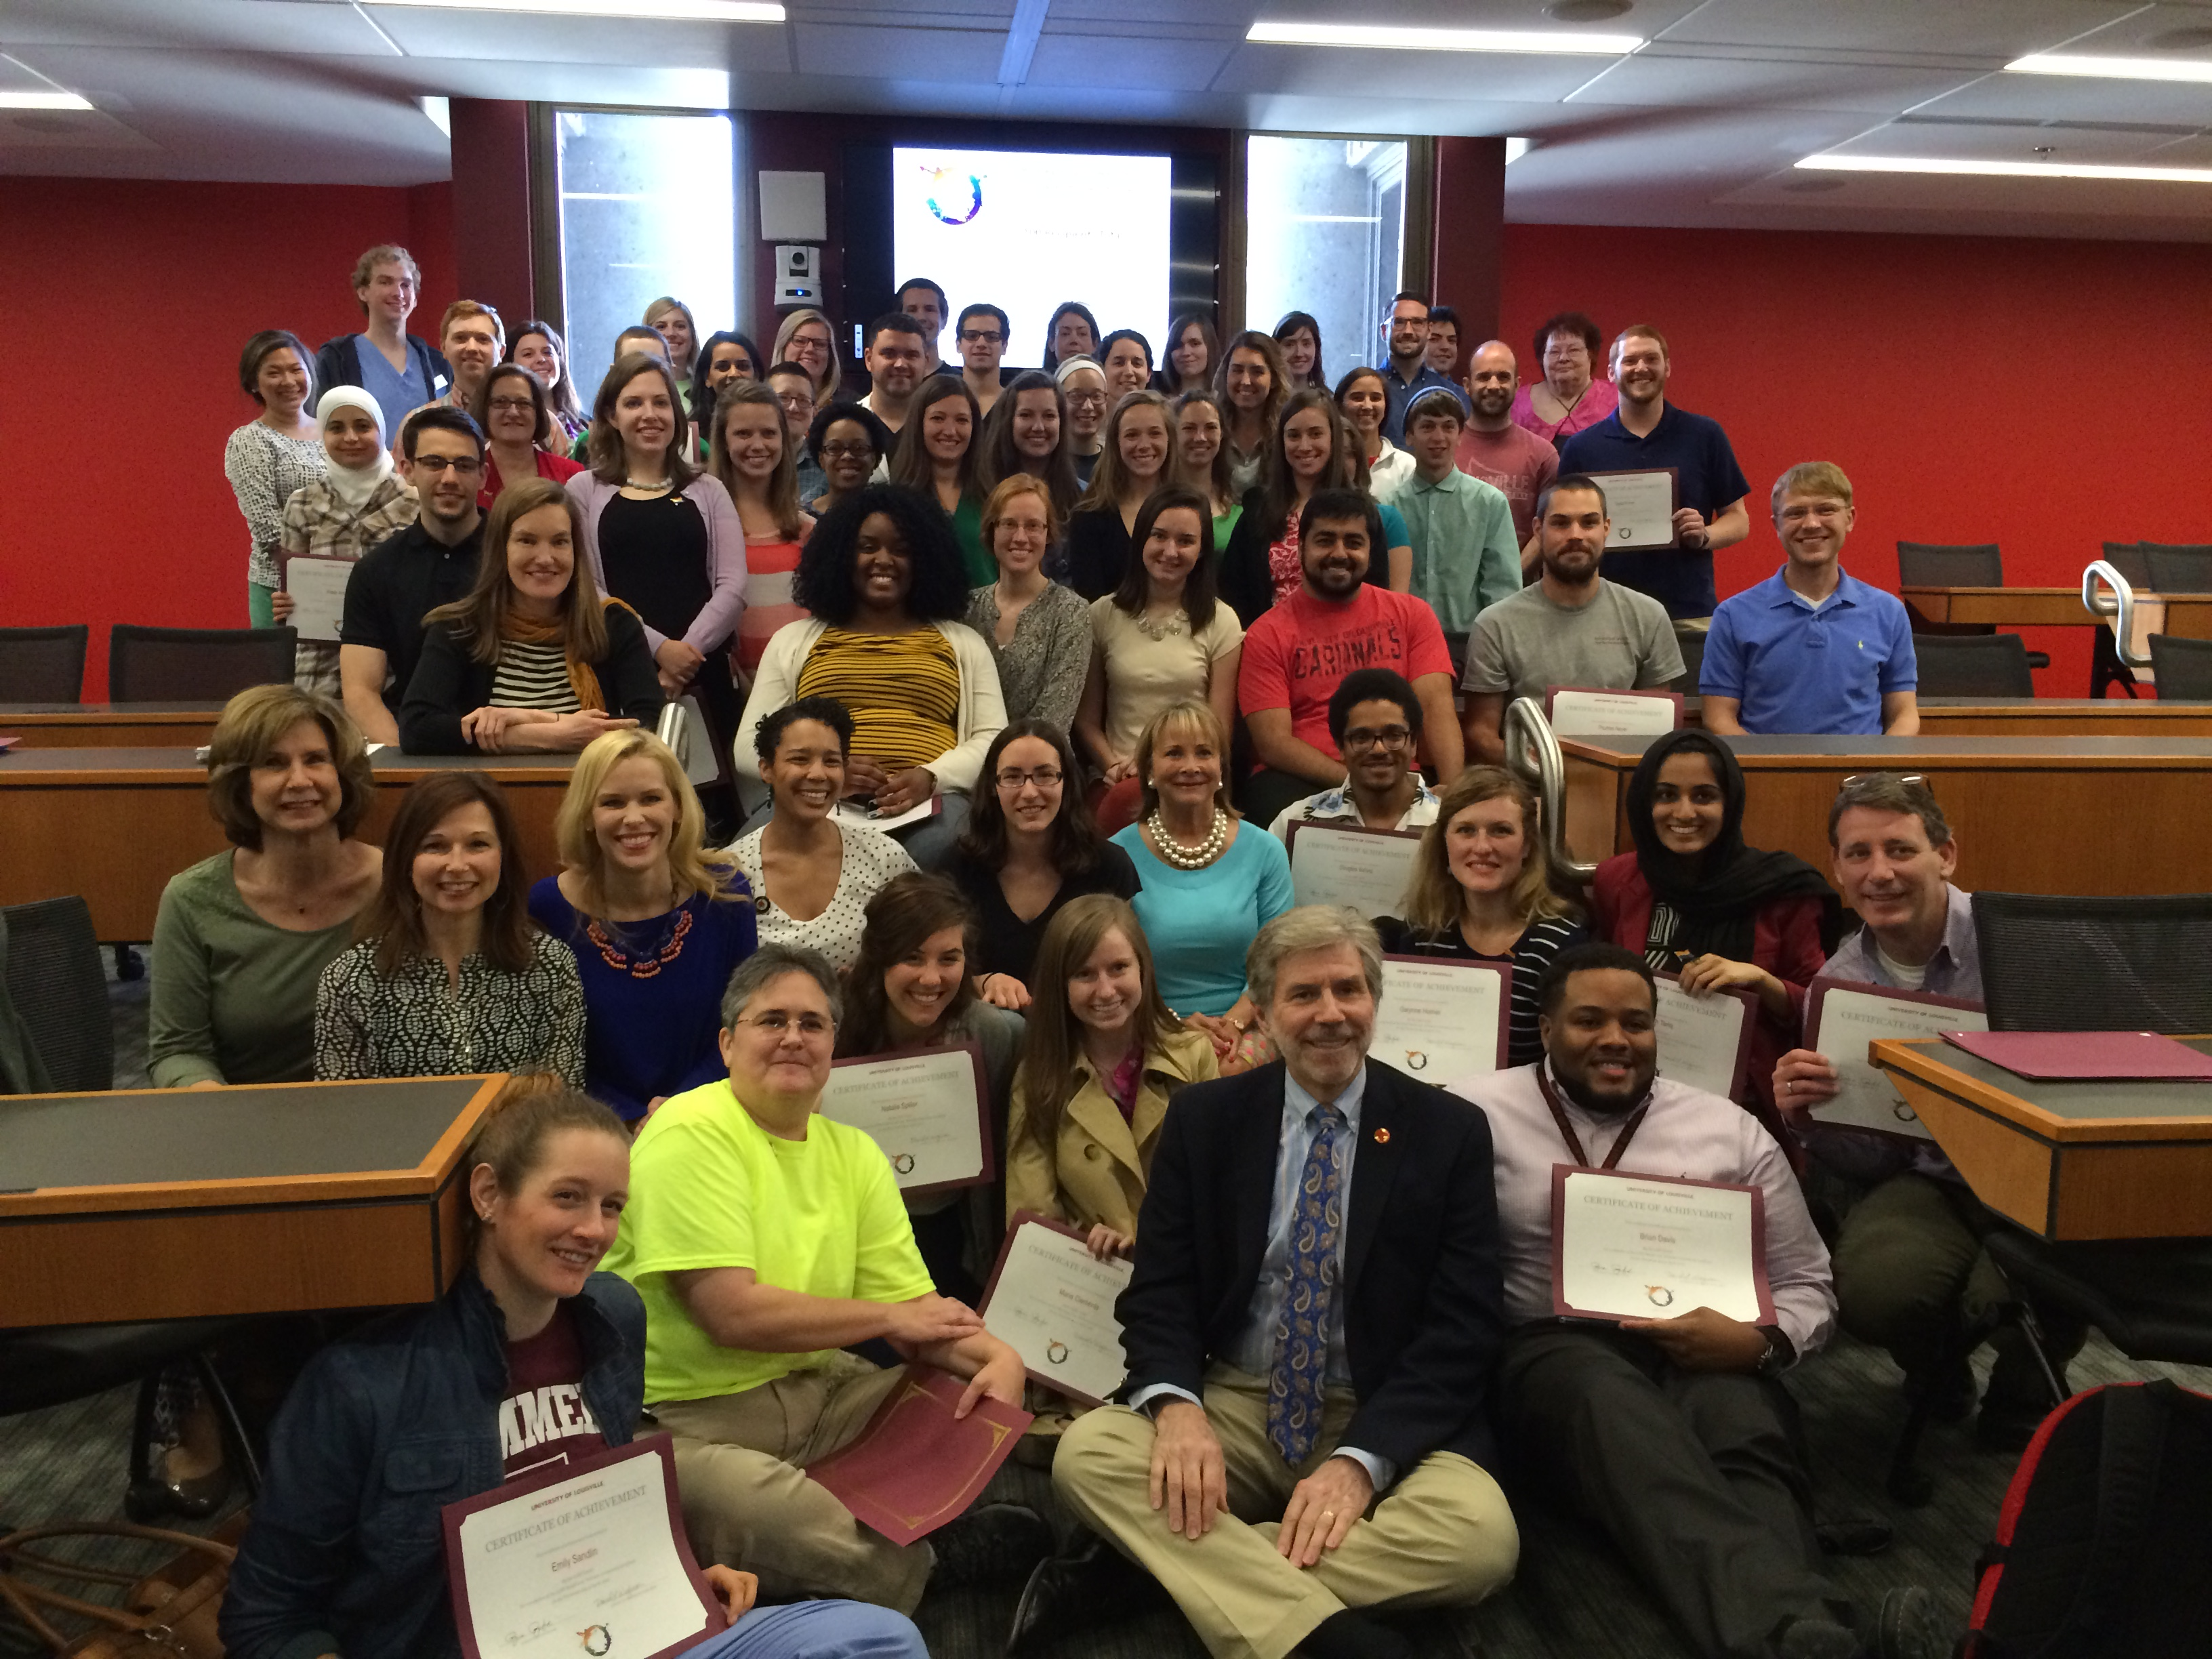 LGBT Health and Wellness certificates presented to 102 students, faculty and staff